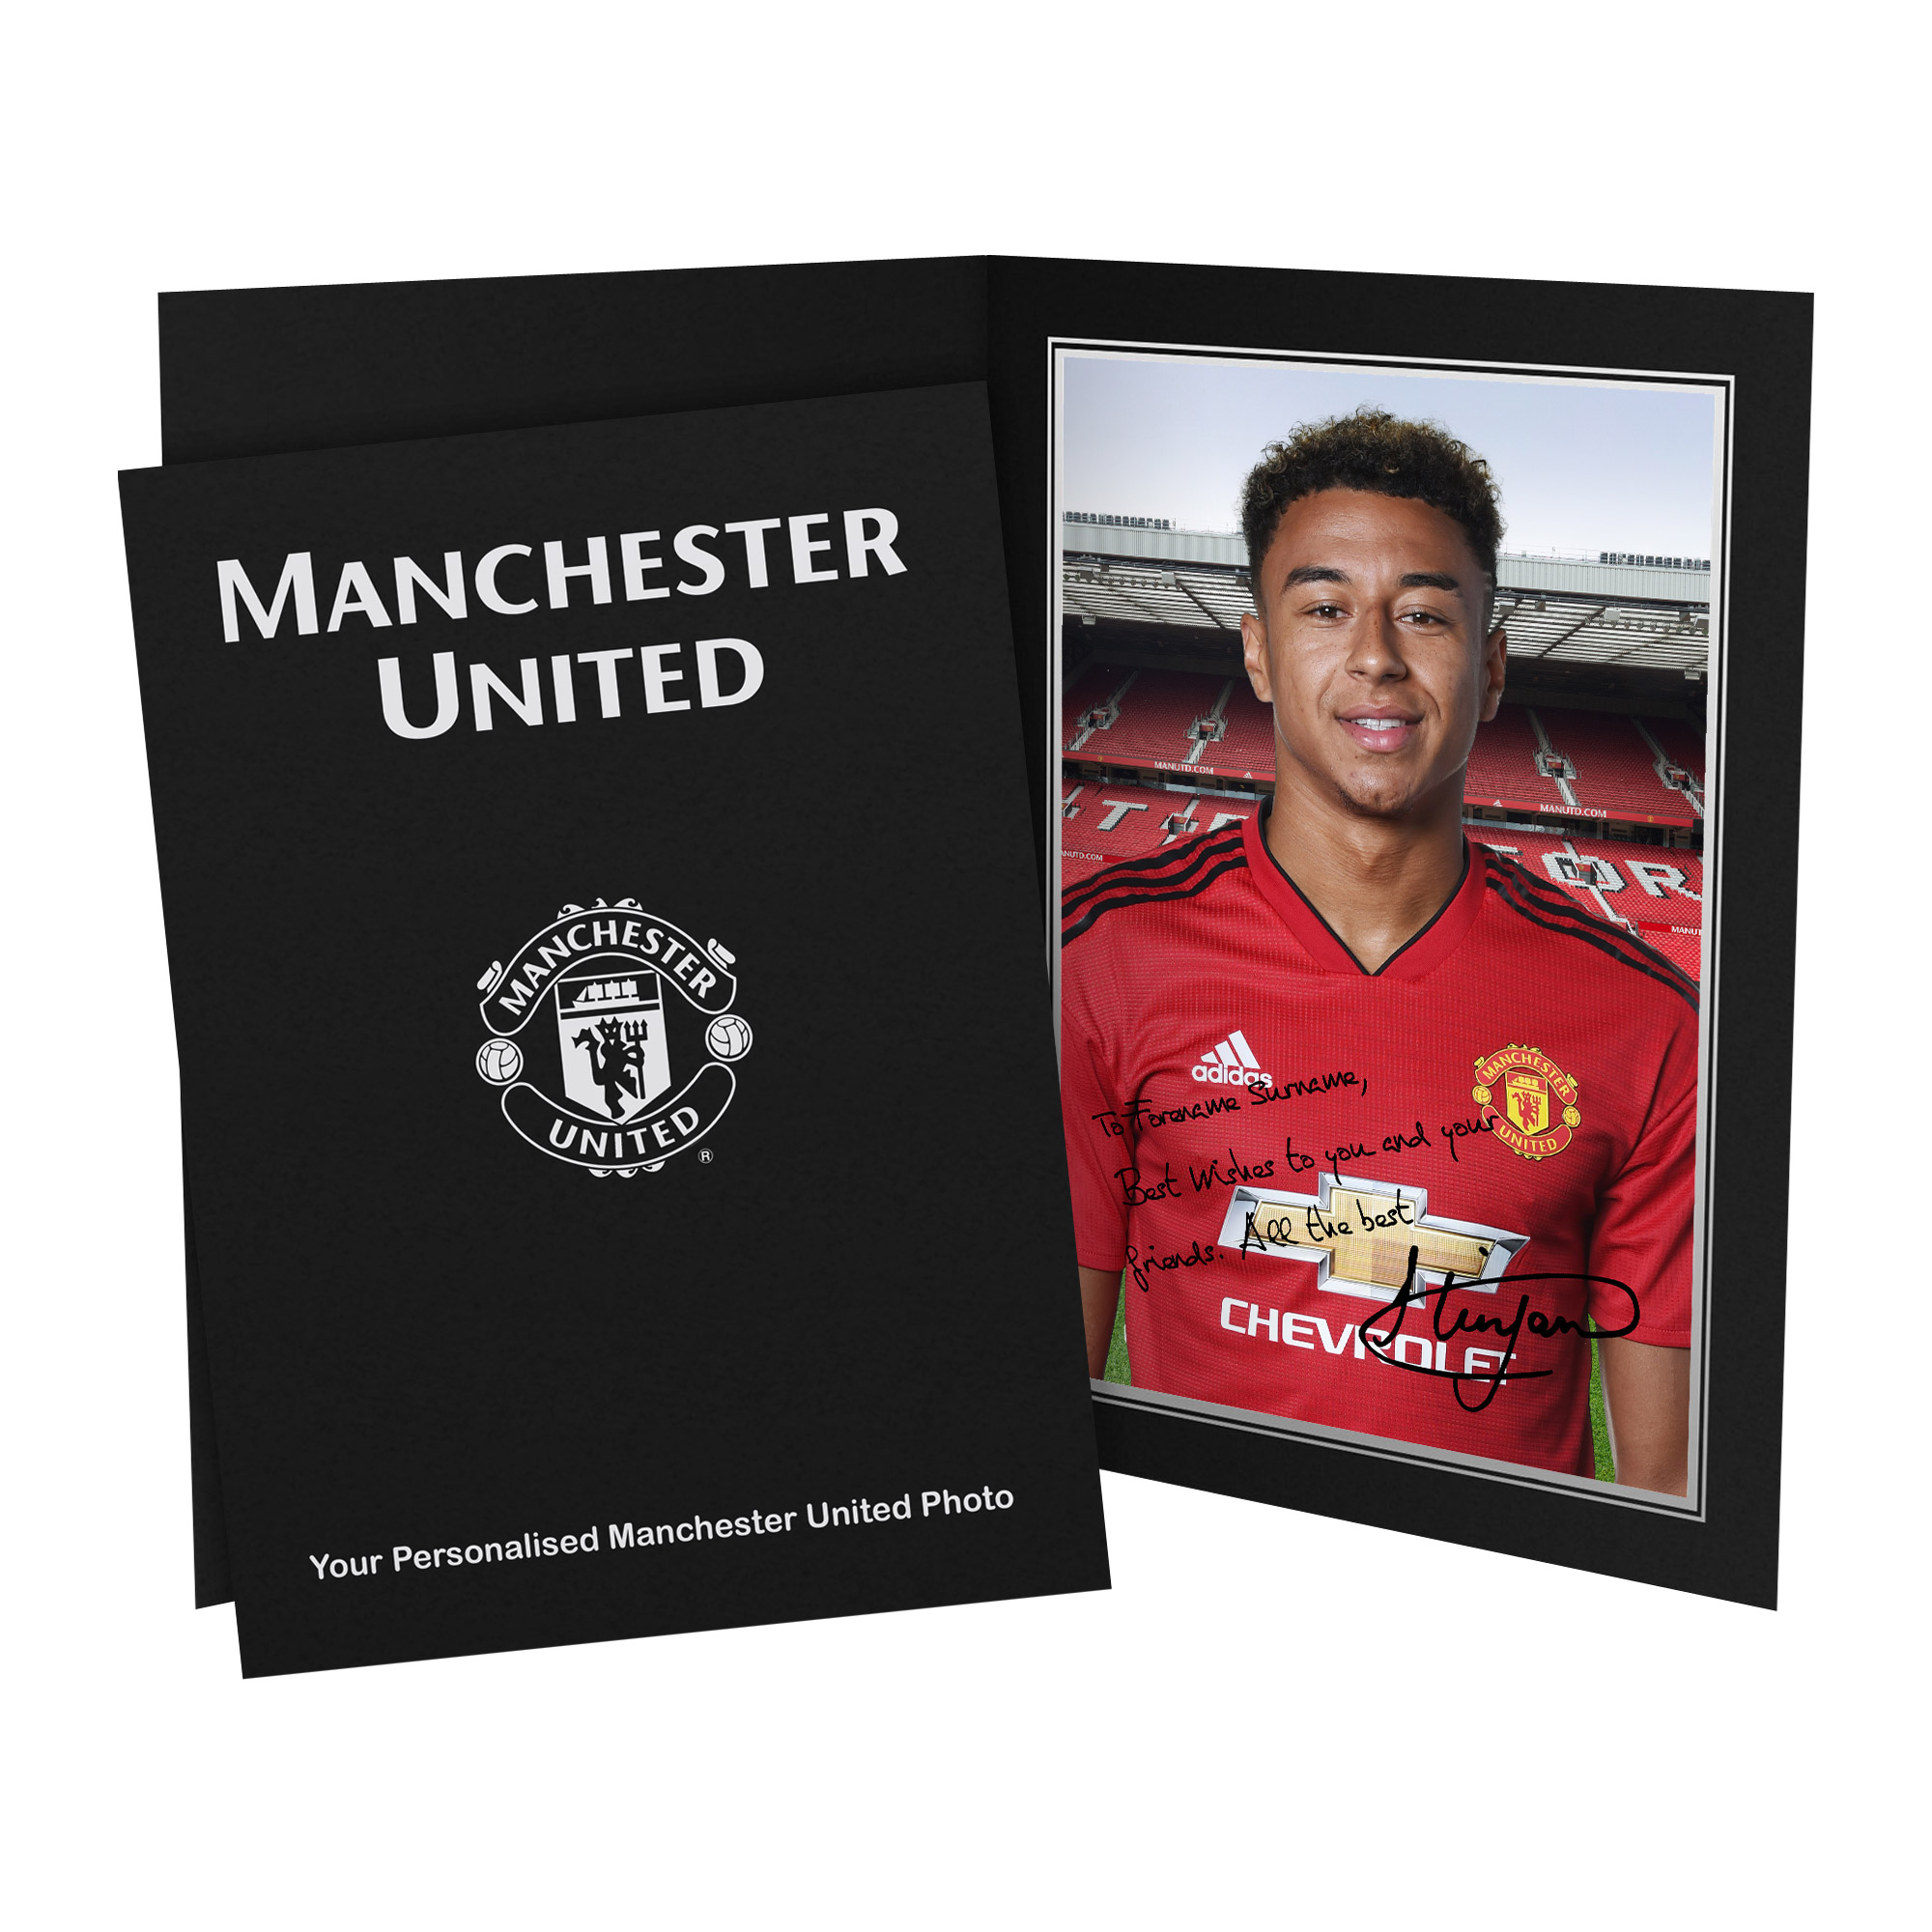 Manchester United FC Lingard Autograph Photo Folder